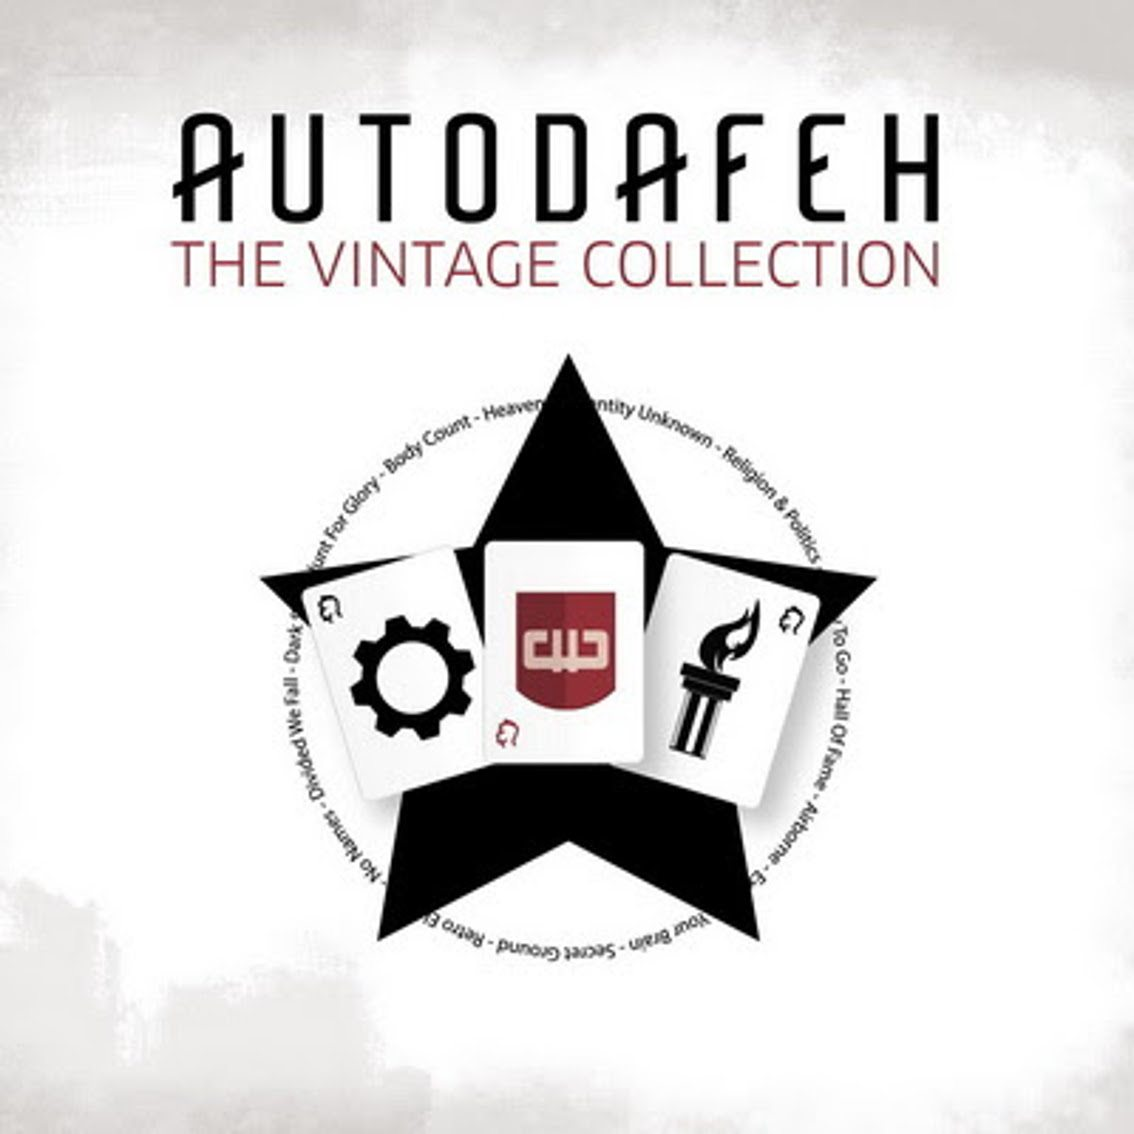 Autodafeh releases limited edition vinyl for'The Vintage Collection'